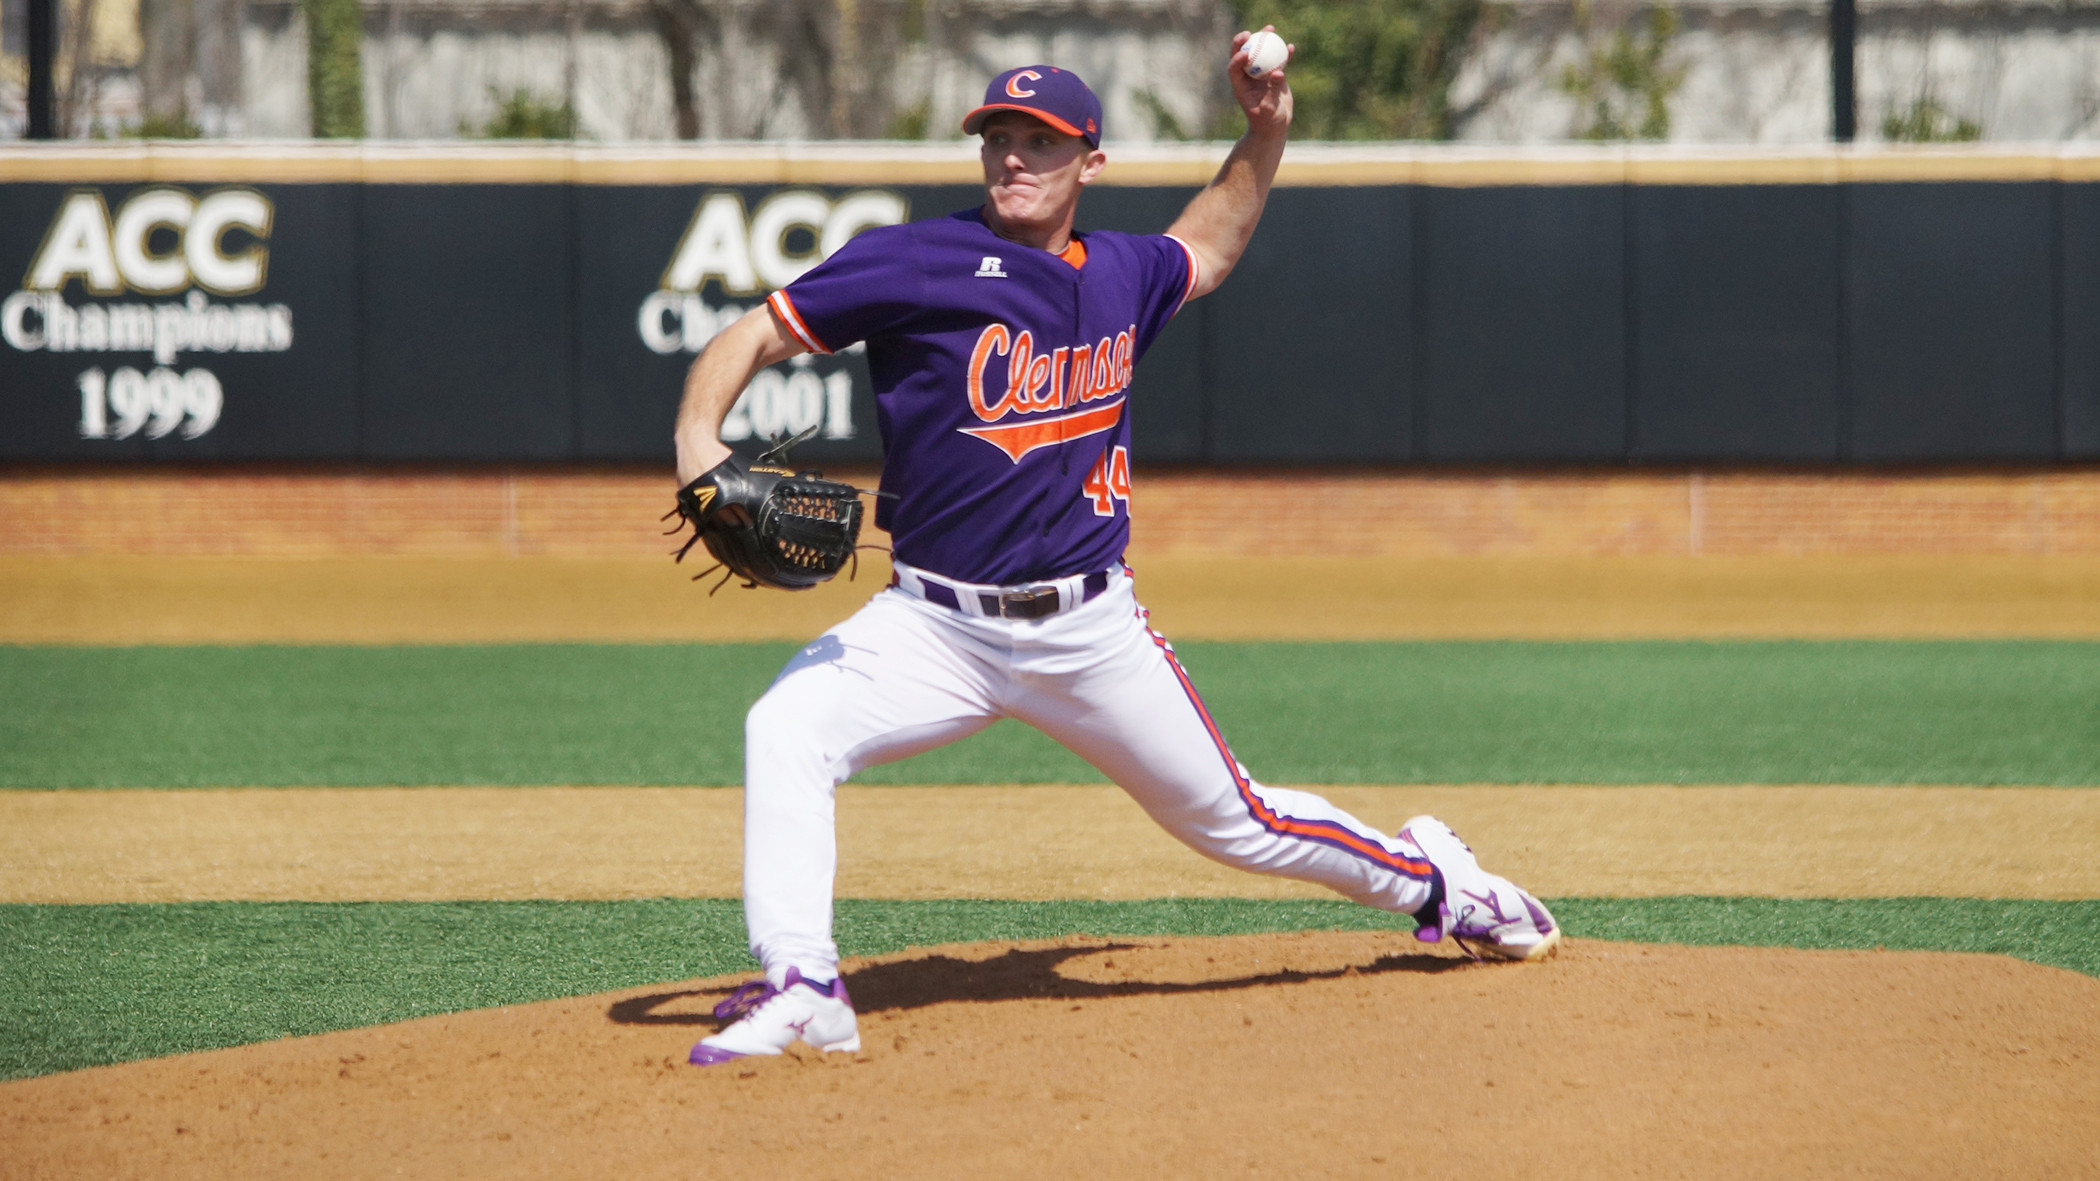 Crownover to Return to Clemson in 2015